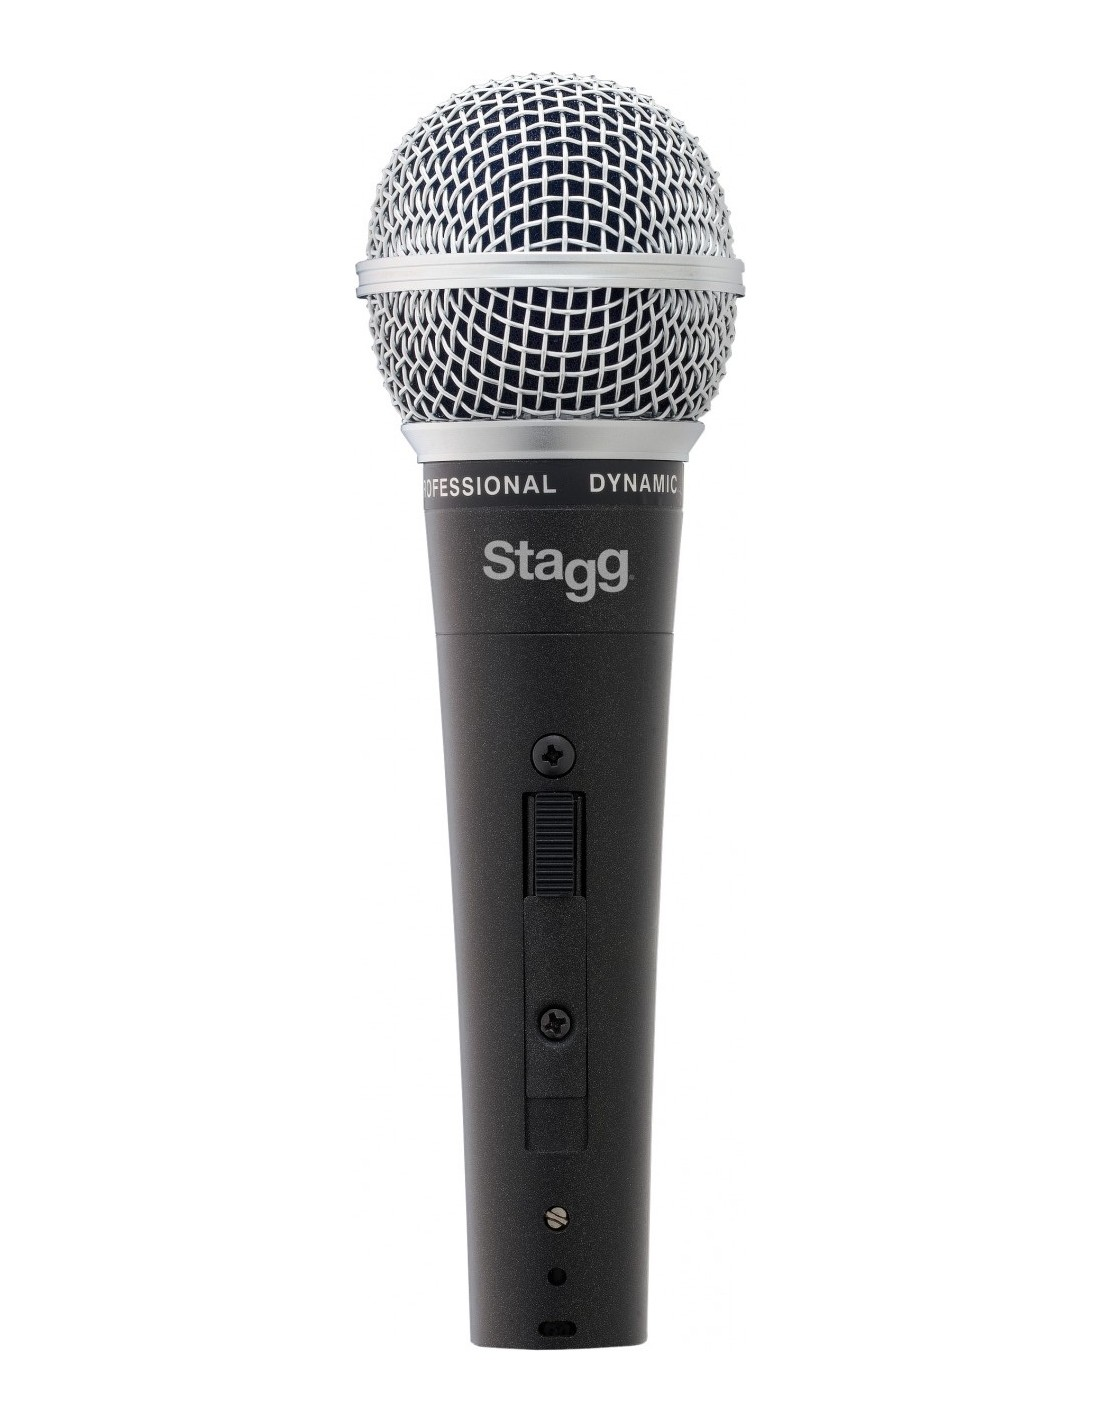 stagg sdm50 metal chassis vocalist dynamic microphone. Black Bedroom Furniture Sets. Home Design Ideas